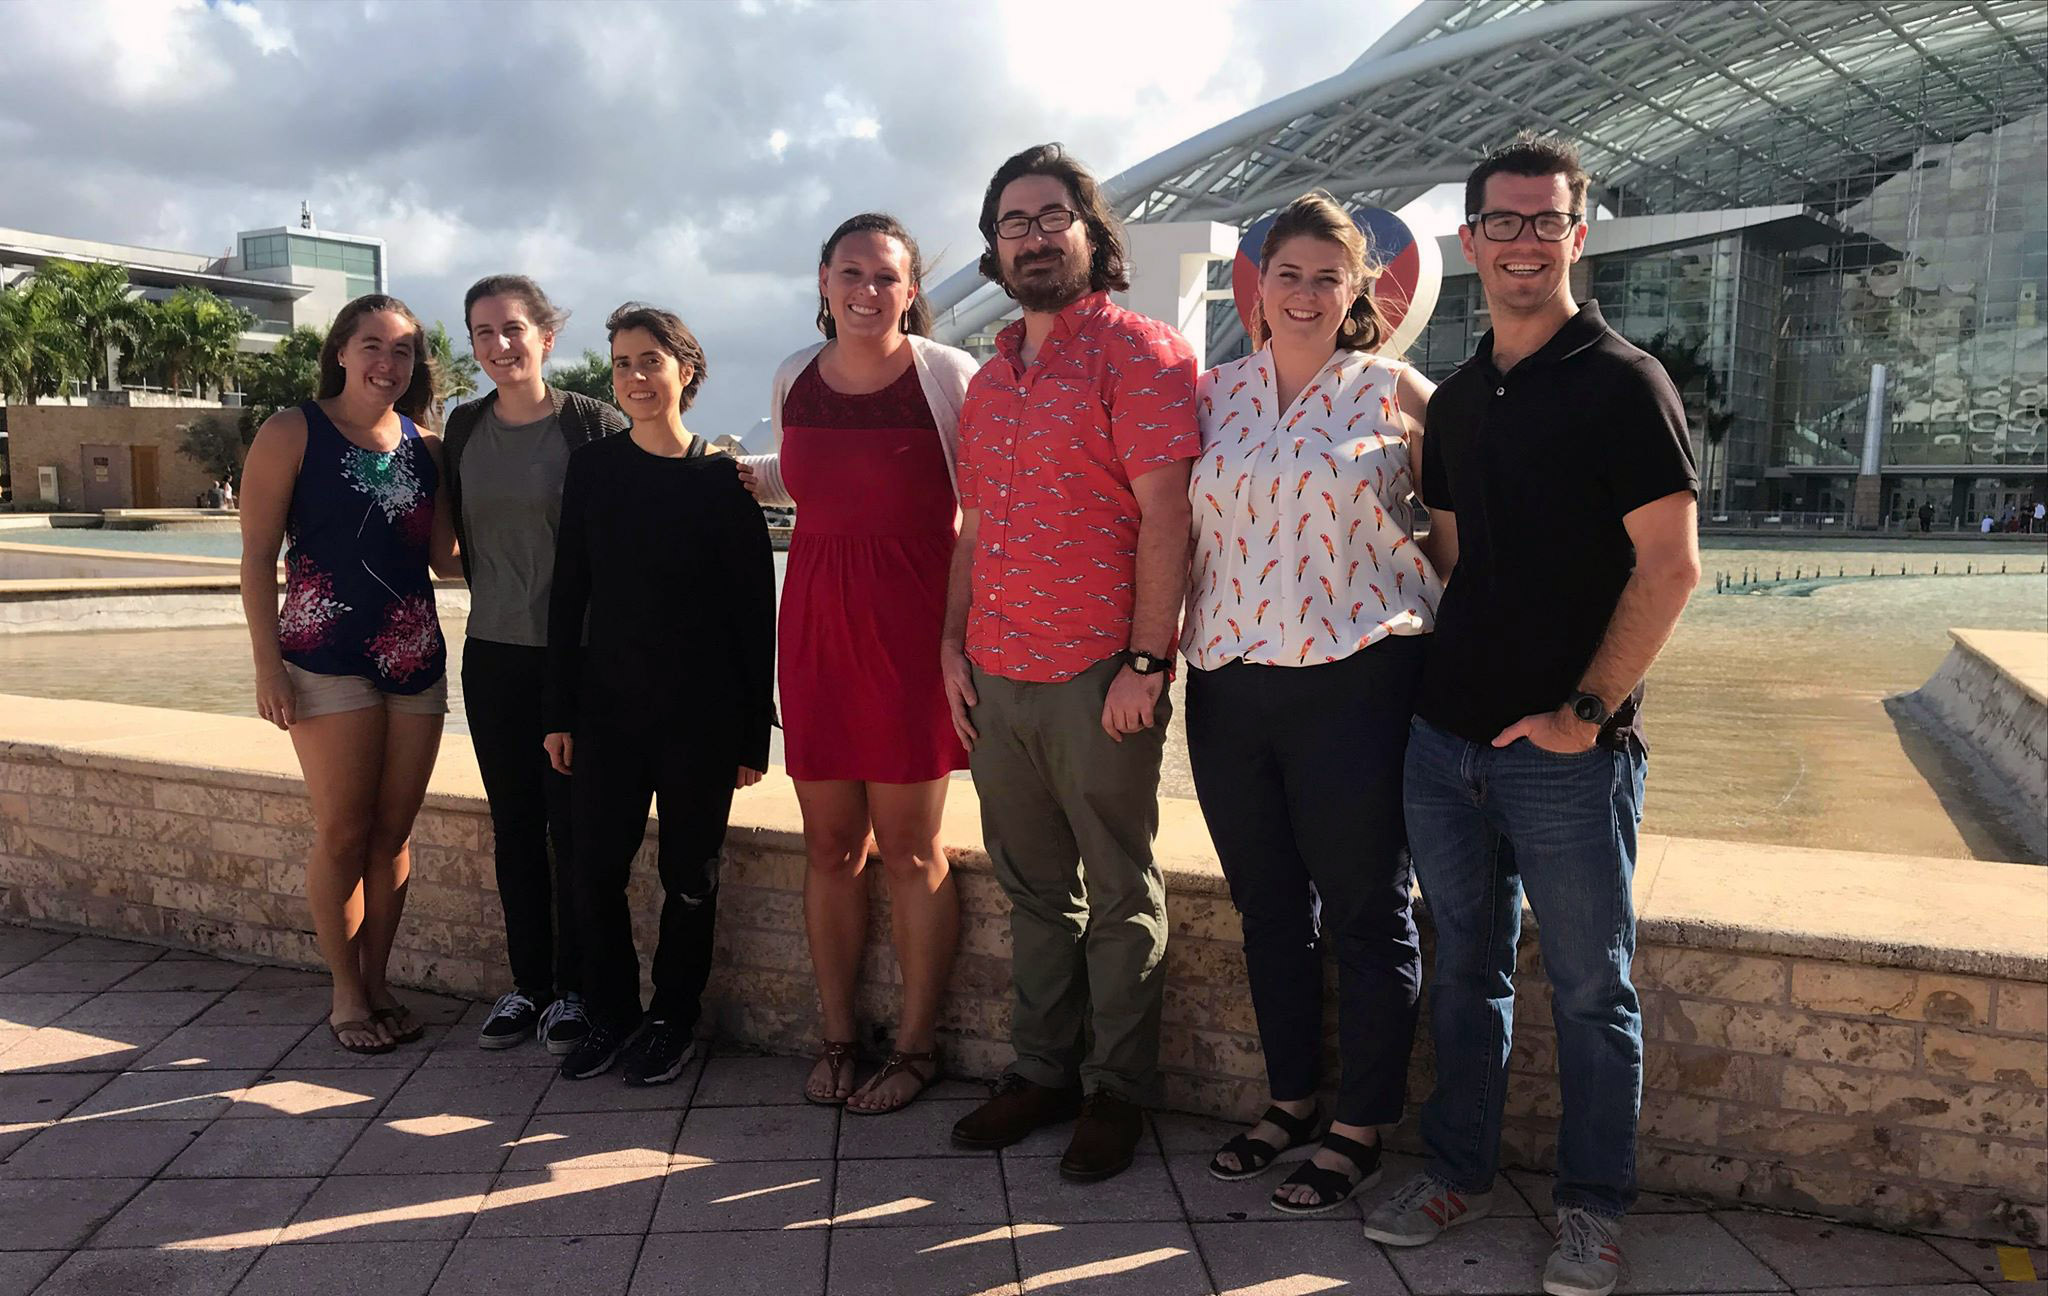 Seven USFCMS graduate students just wrapped up their second day at the 2019 Association for the Sciences of Limnology and Oceanography (ASLO) conference in San Juan, Puerto Rico. Attendees include left to right: Jon Sharp, Ellie Hudson-Heck, Shannon Burns, Adrienne Hollister, Katelyn Schockman, Kate Dubickas, and Ben Ross. Photo courtesy of: Kate Dubickas